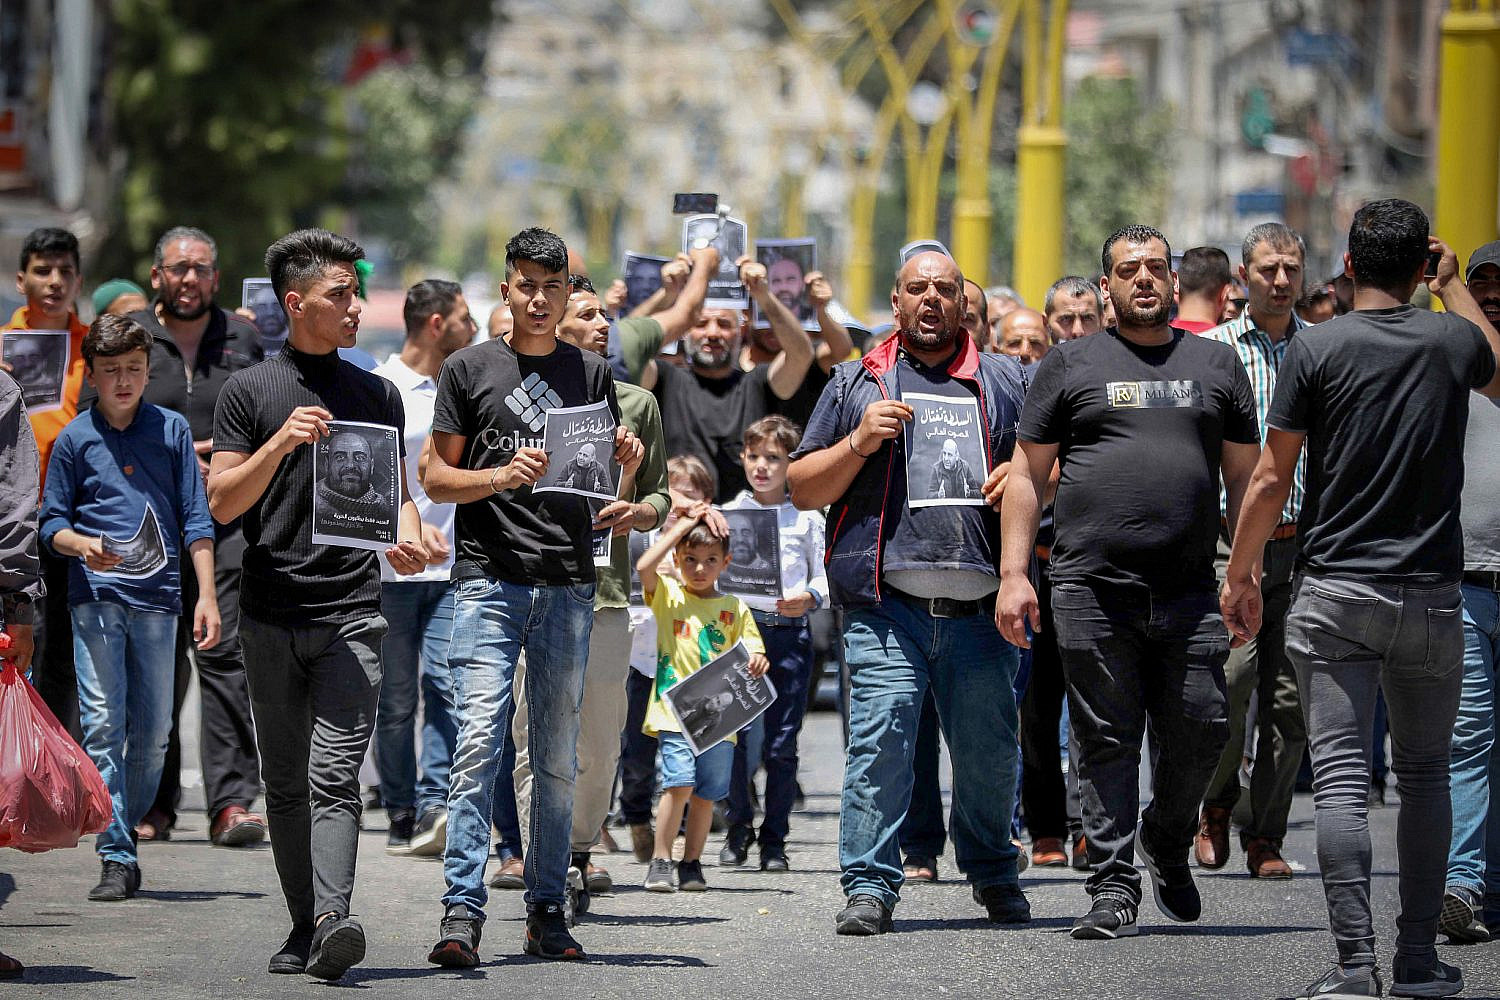 Palestinians take part in a protest over the killing of activist Nizar Banat, in the West Bank city of Hebron, July 2, 2021. (Wisam Hashlamoun/Flash90)